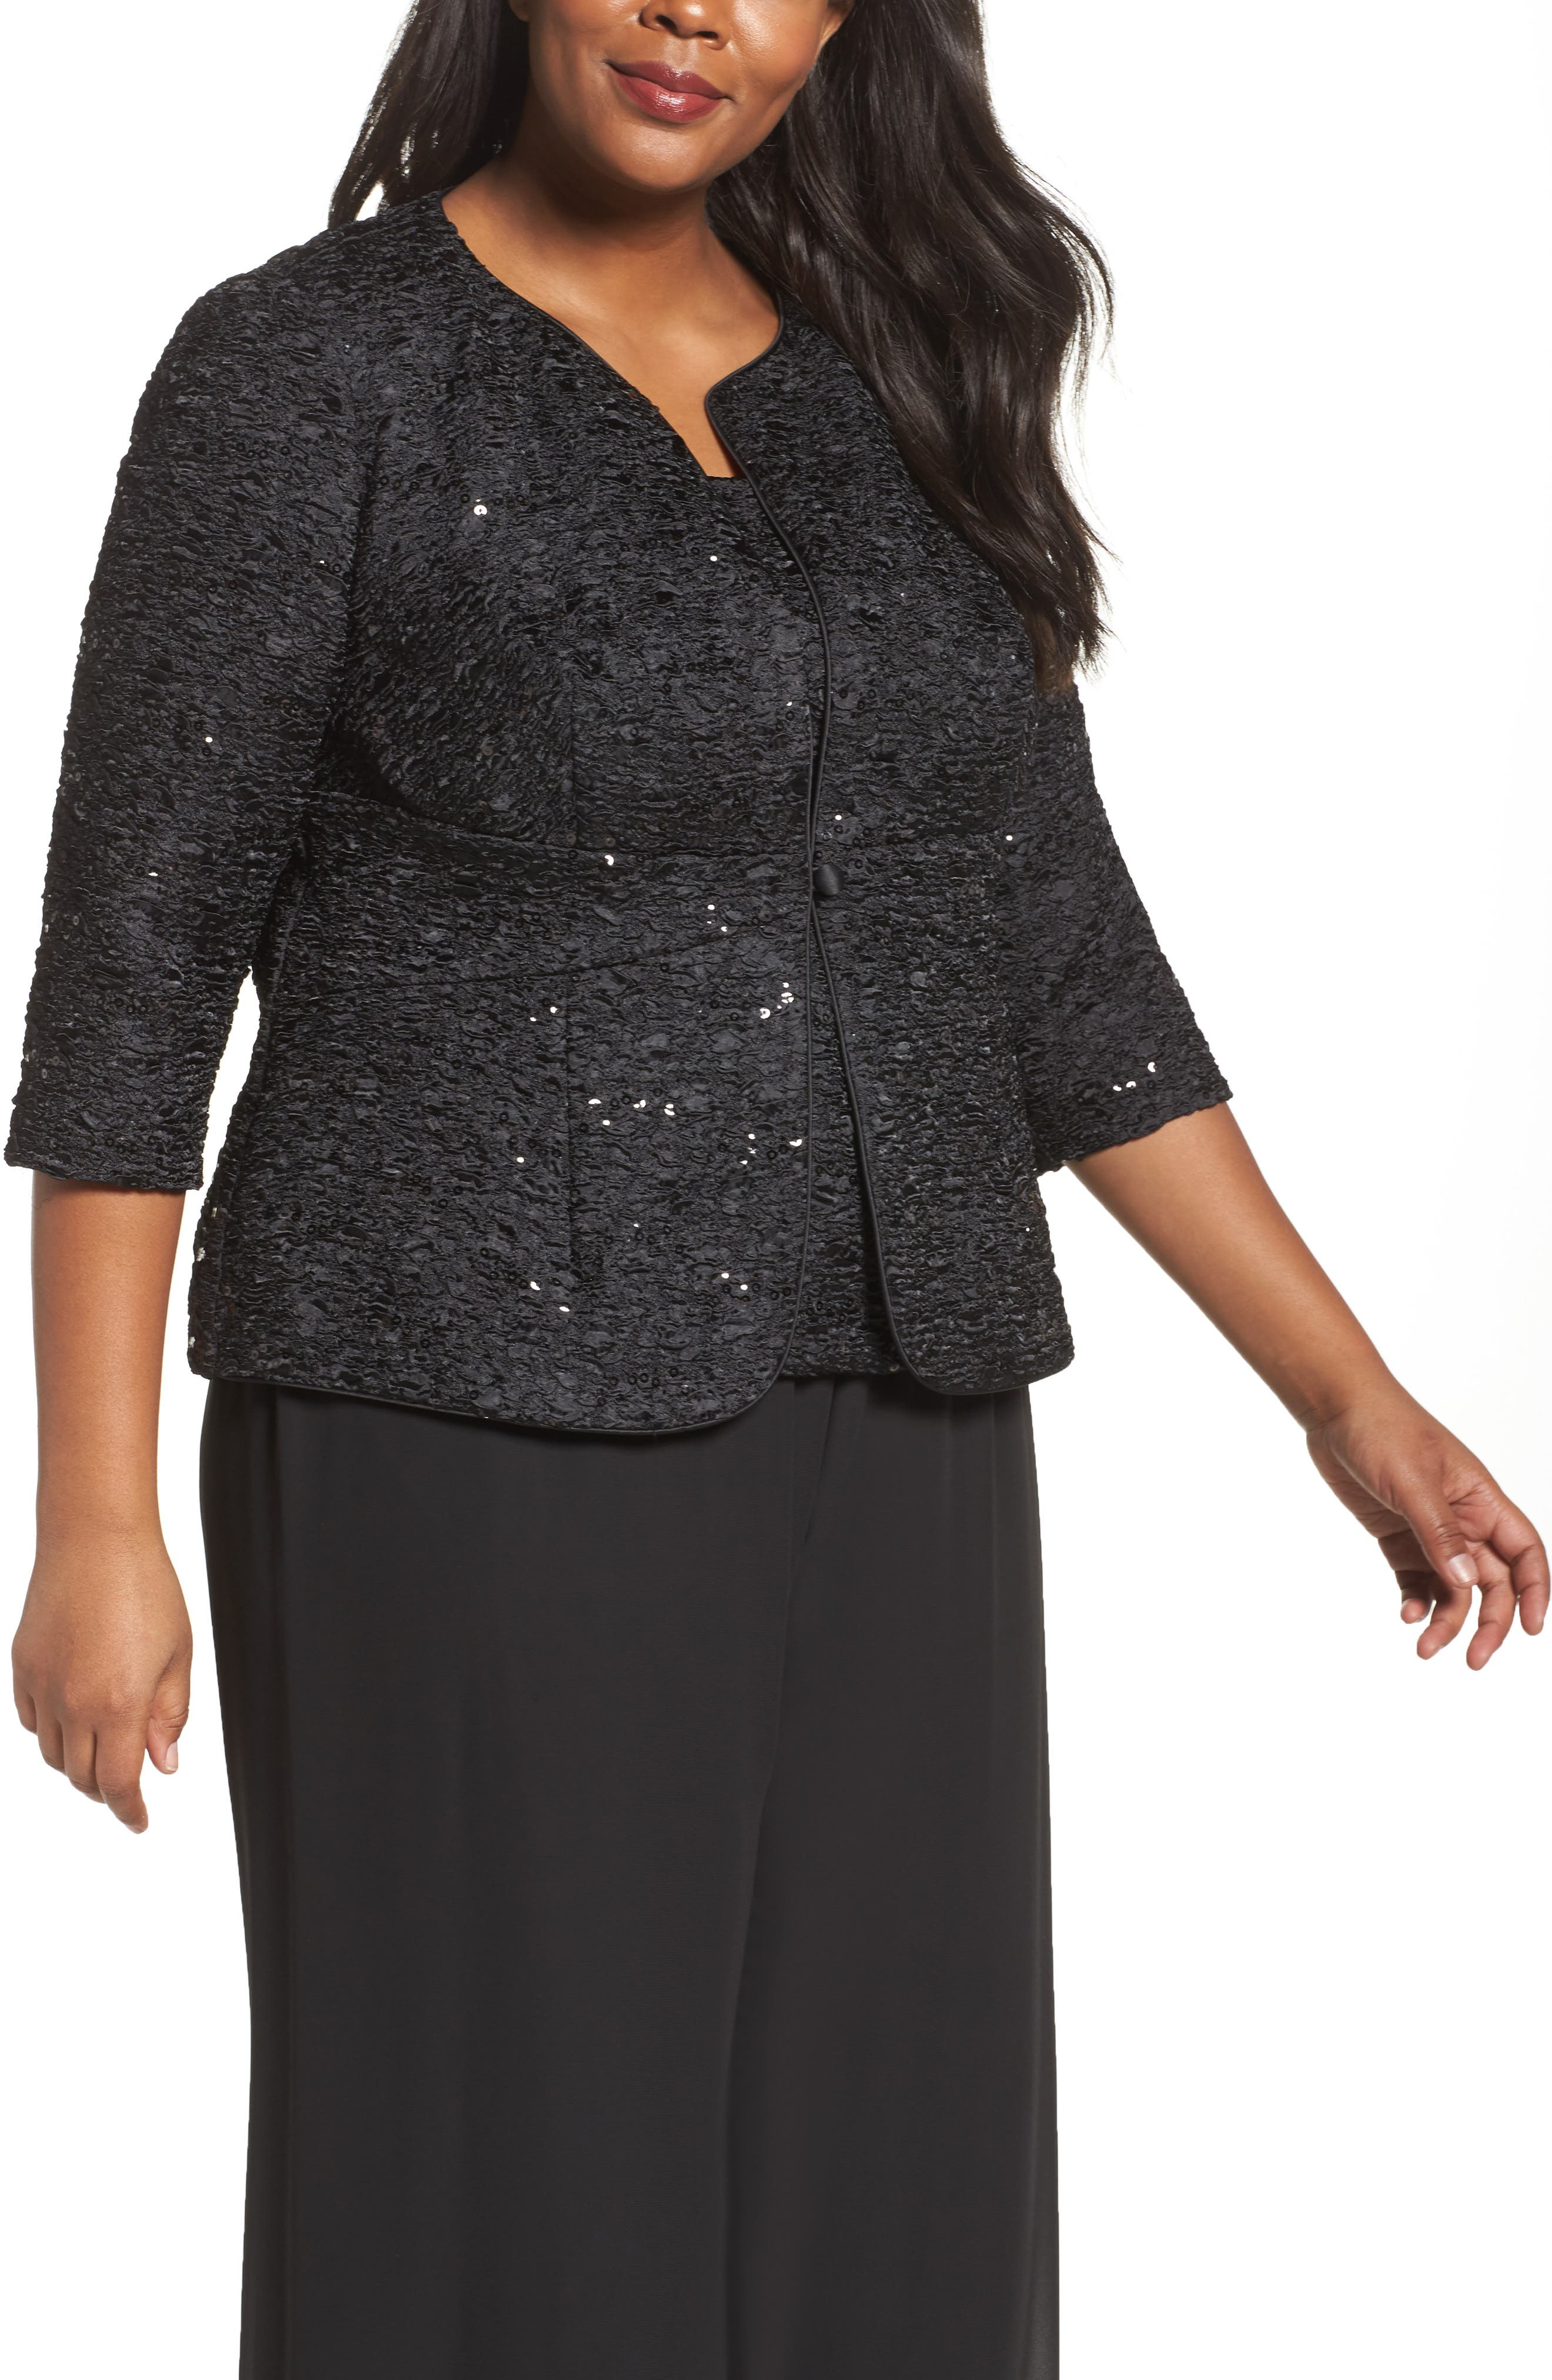 Sequin Jacket & Camisole Twinset,                             Main thumbnail 1, color,                             001